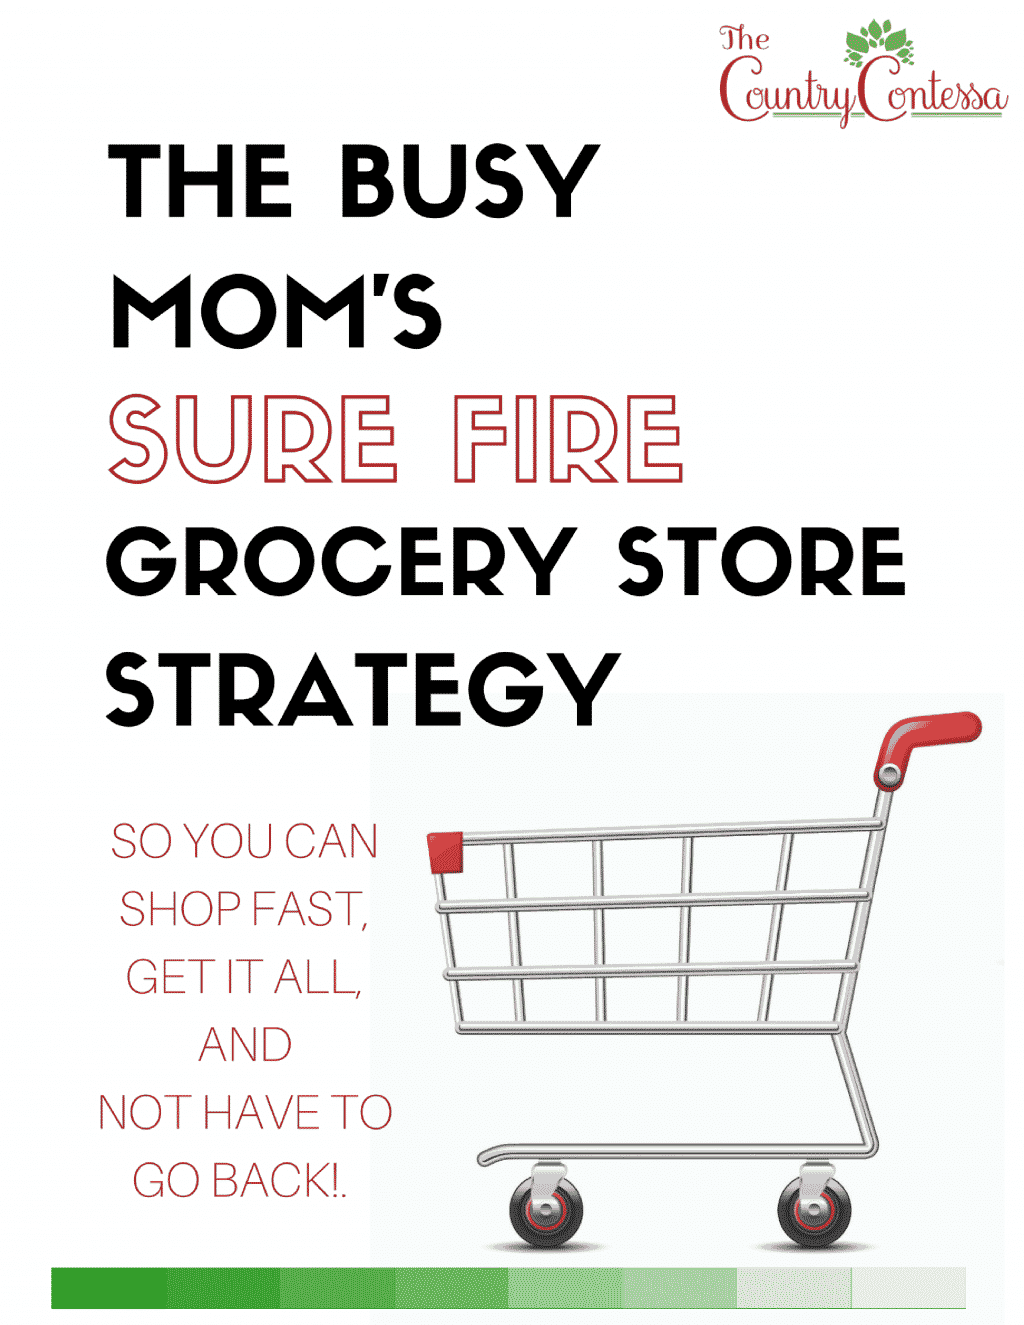 Do you grocery shop every day? Or worse, drag yourself around the store for an hour only to find you STILL don't have any plans for dinner? Solve all of your problems with my simple strategies for shopping faster and more efficiently so you can get in, get it all and not have to go back.